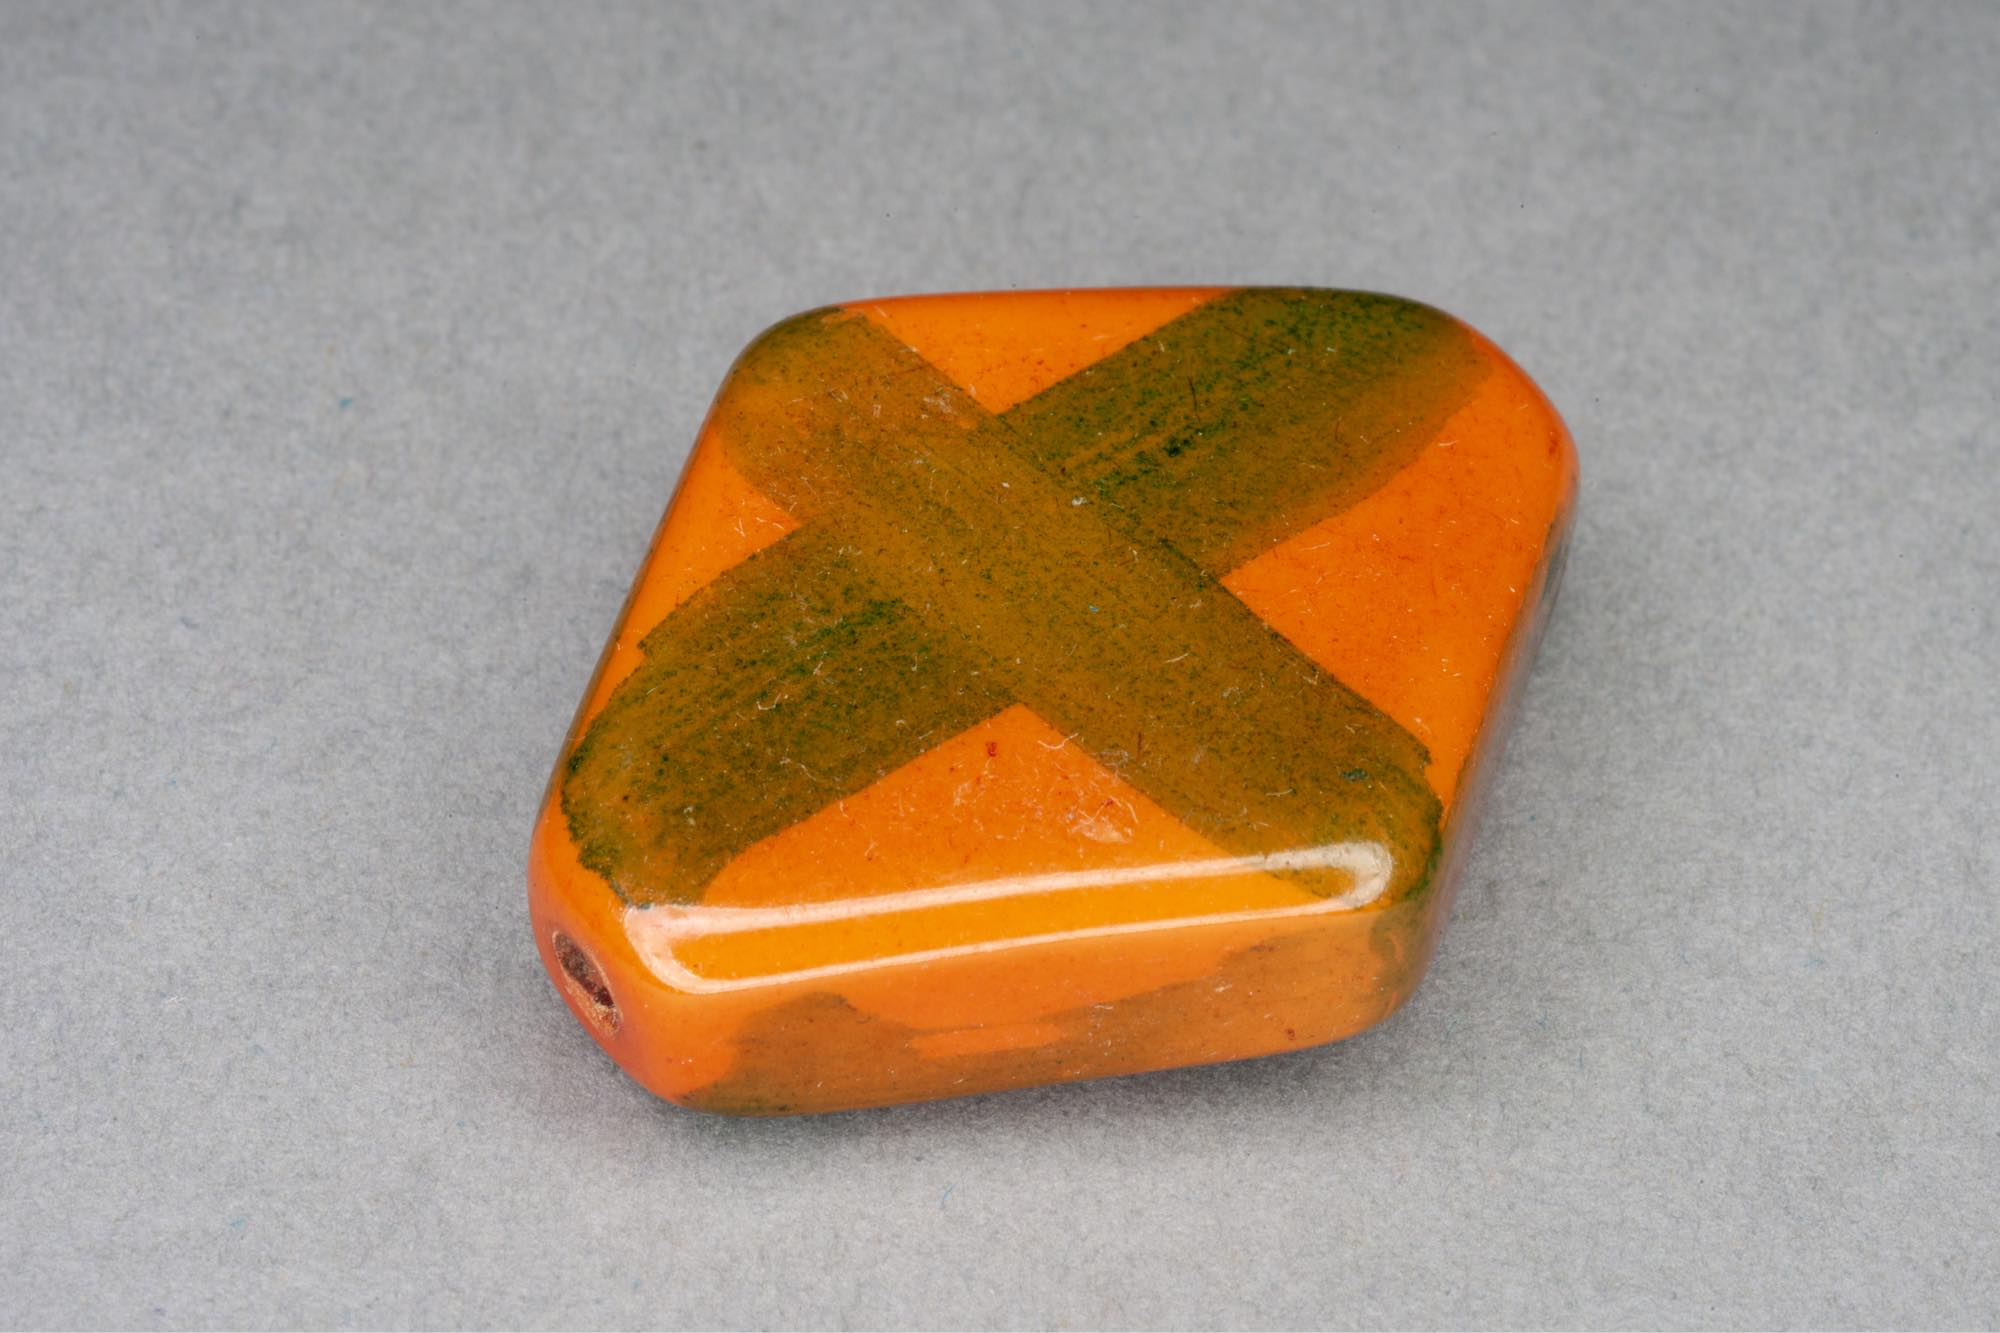 Terracotta Flat Diamond Resin Bead With Green Cross 32x26x7mm, 2mm hole